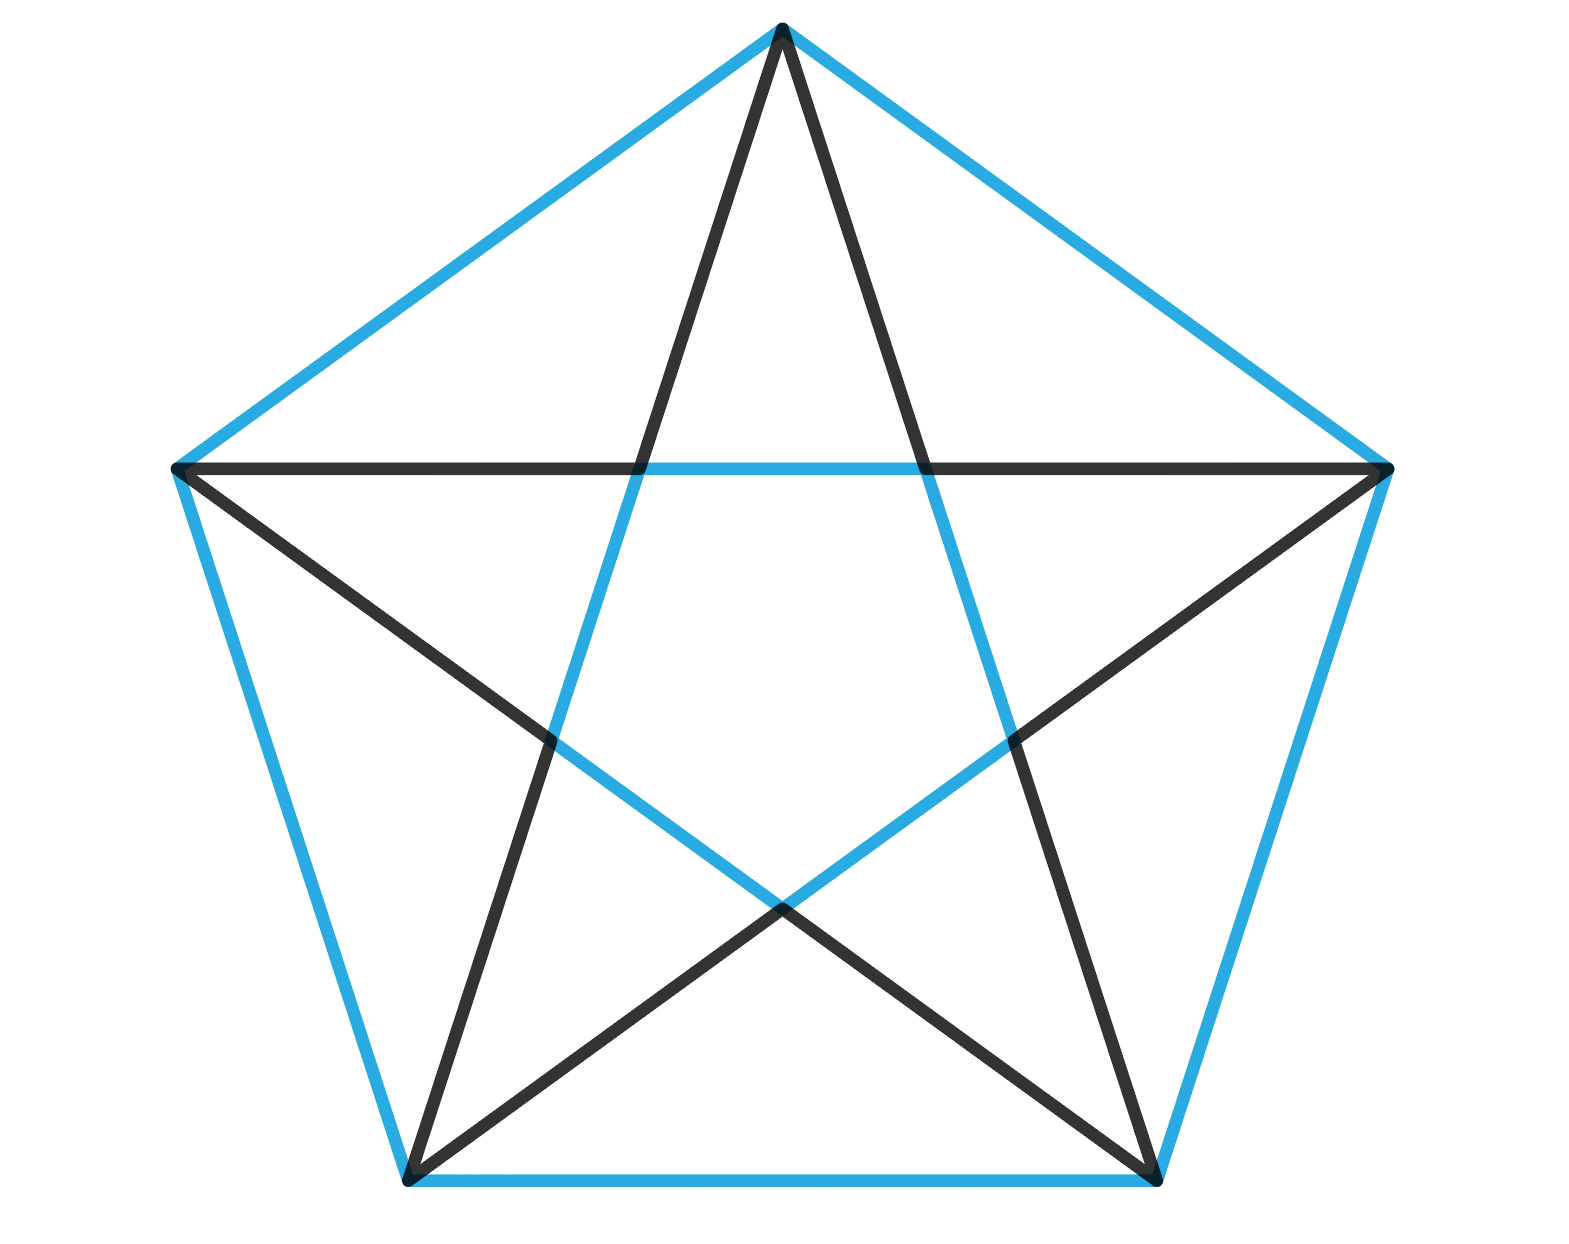 A star encased in the two hexagons that define it in Adobe Illustrator